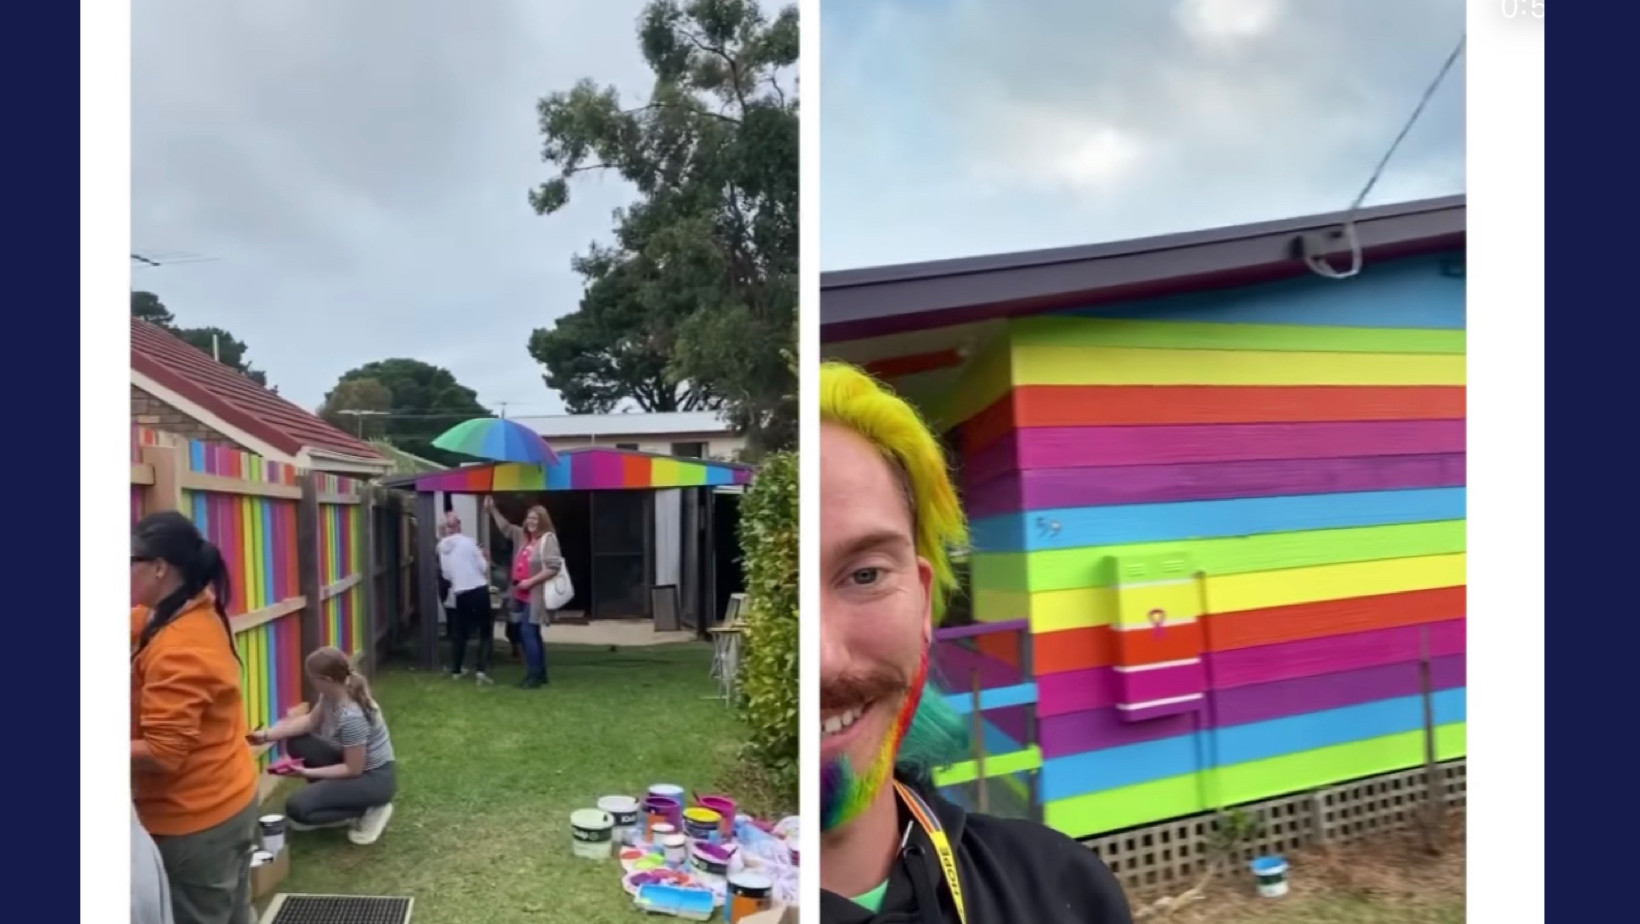 Neighbors rallied & helped a gay man paint his house rainbow colors after death threats